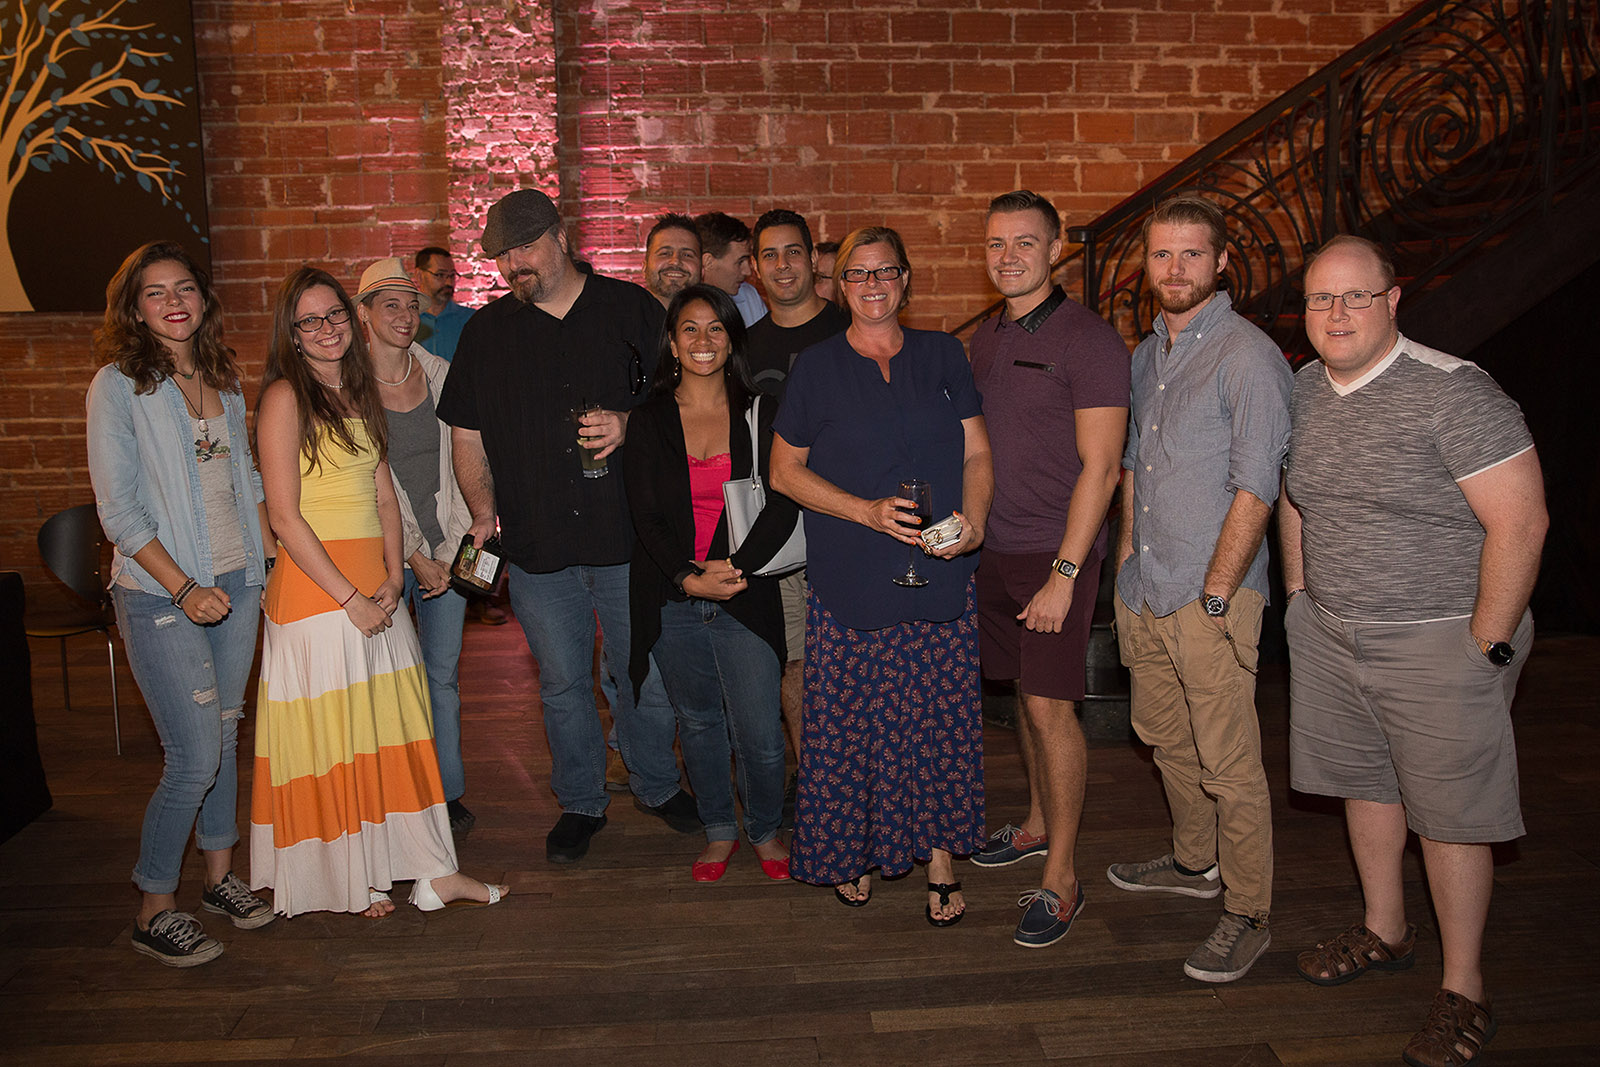 Thursday November 2, 2017 Entrepreneur Social Club was treated to Entrepreneurial Tails of Deliciousness at historic DTSP venue NOVA 535 downtown St. Pete